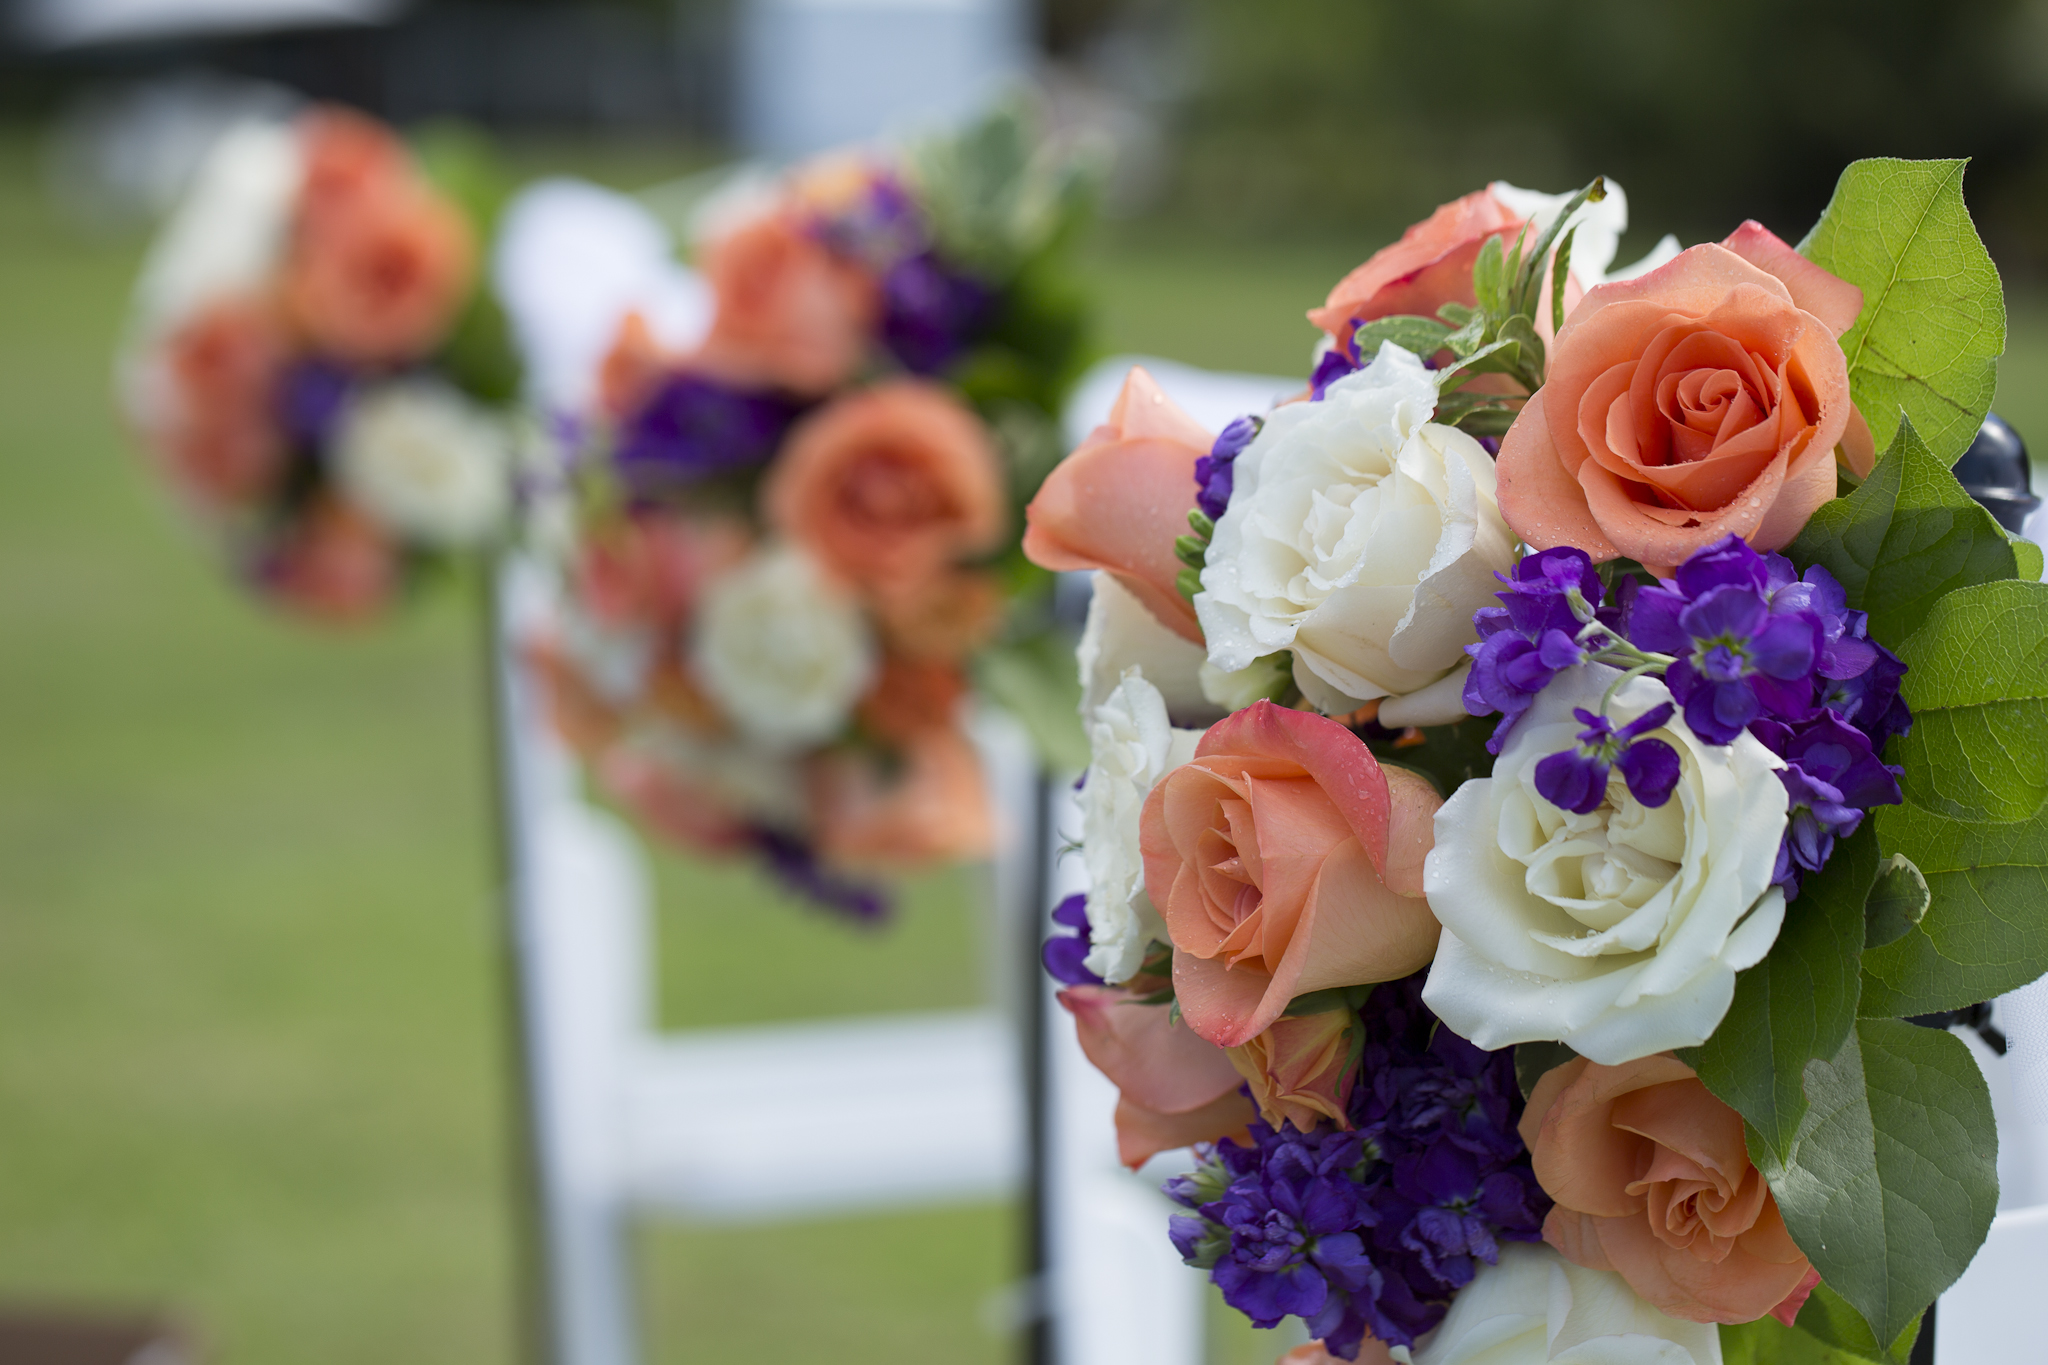 Flowers at the wedding ceremony